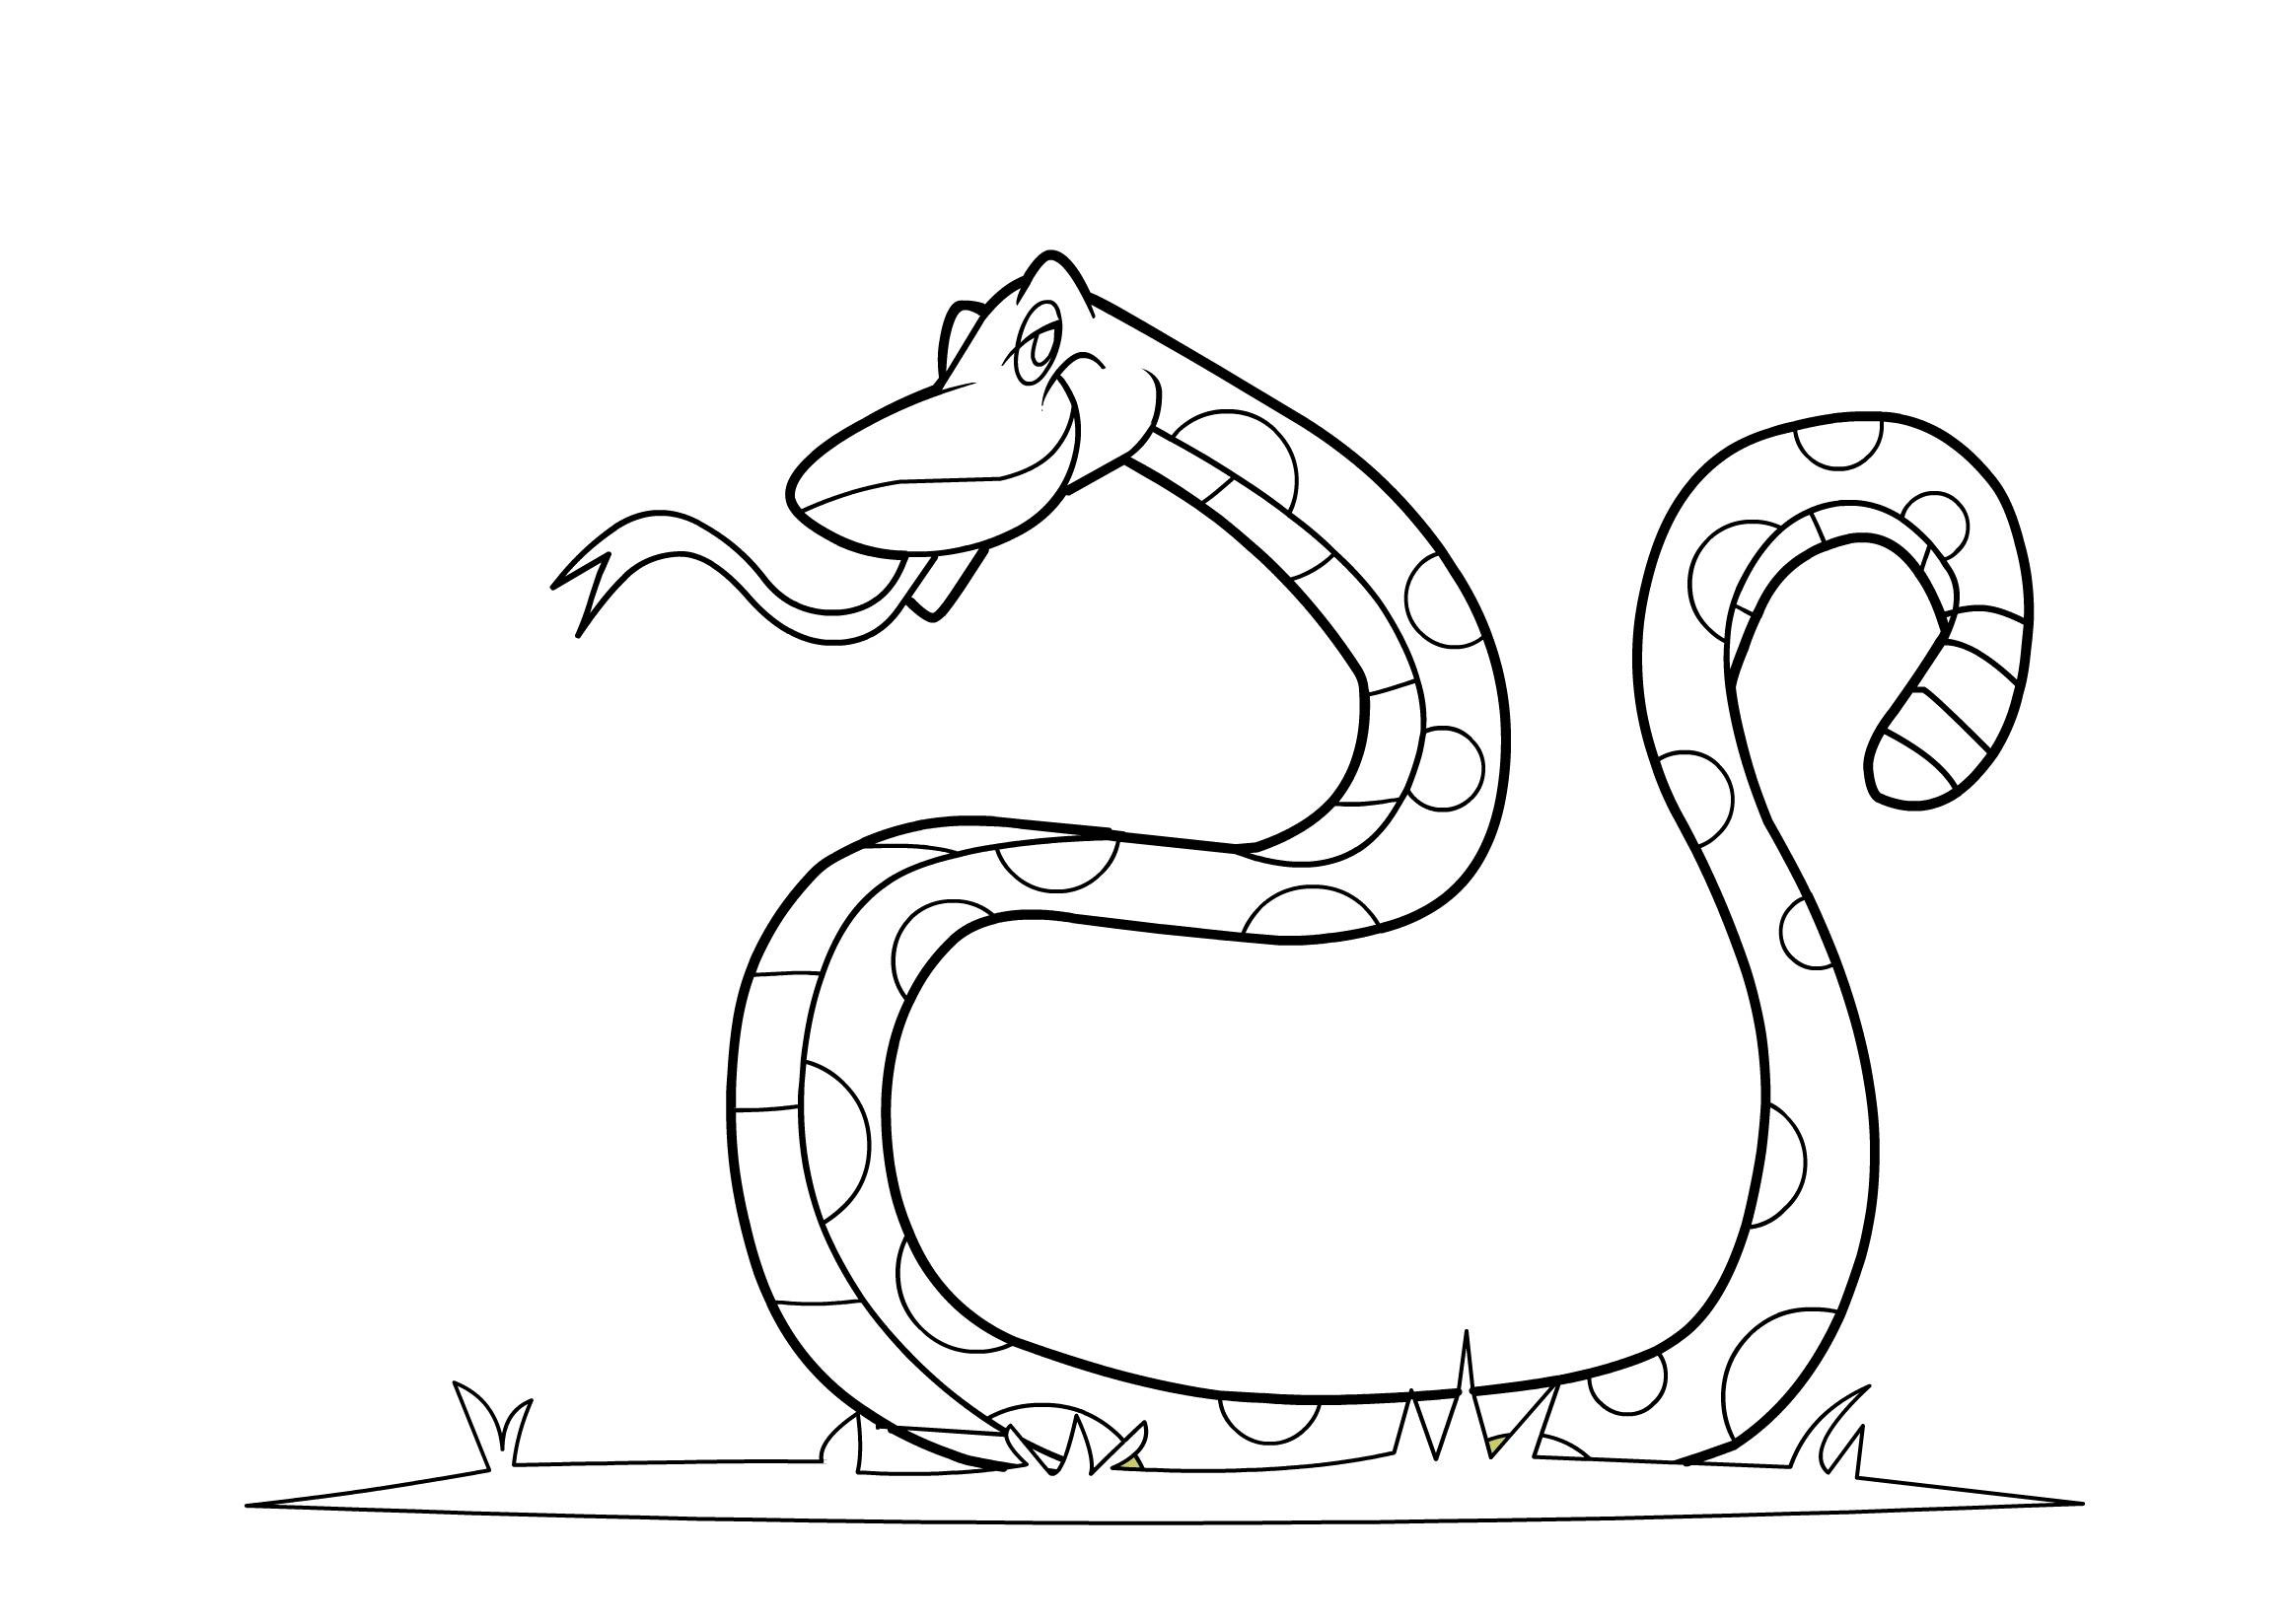 Free coloring pages snakes - Snake Coloring Pages Kids